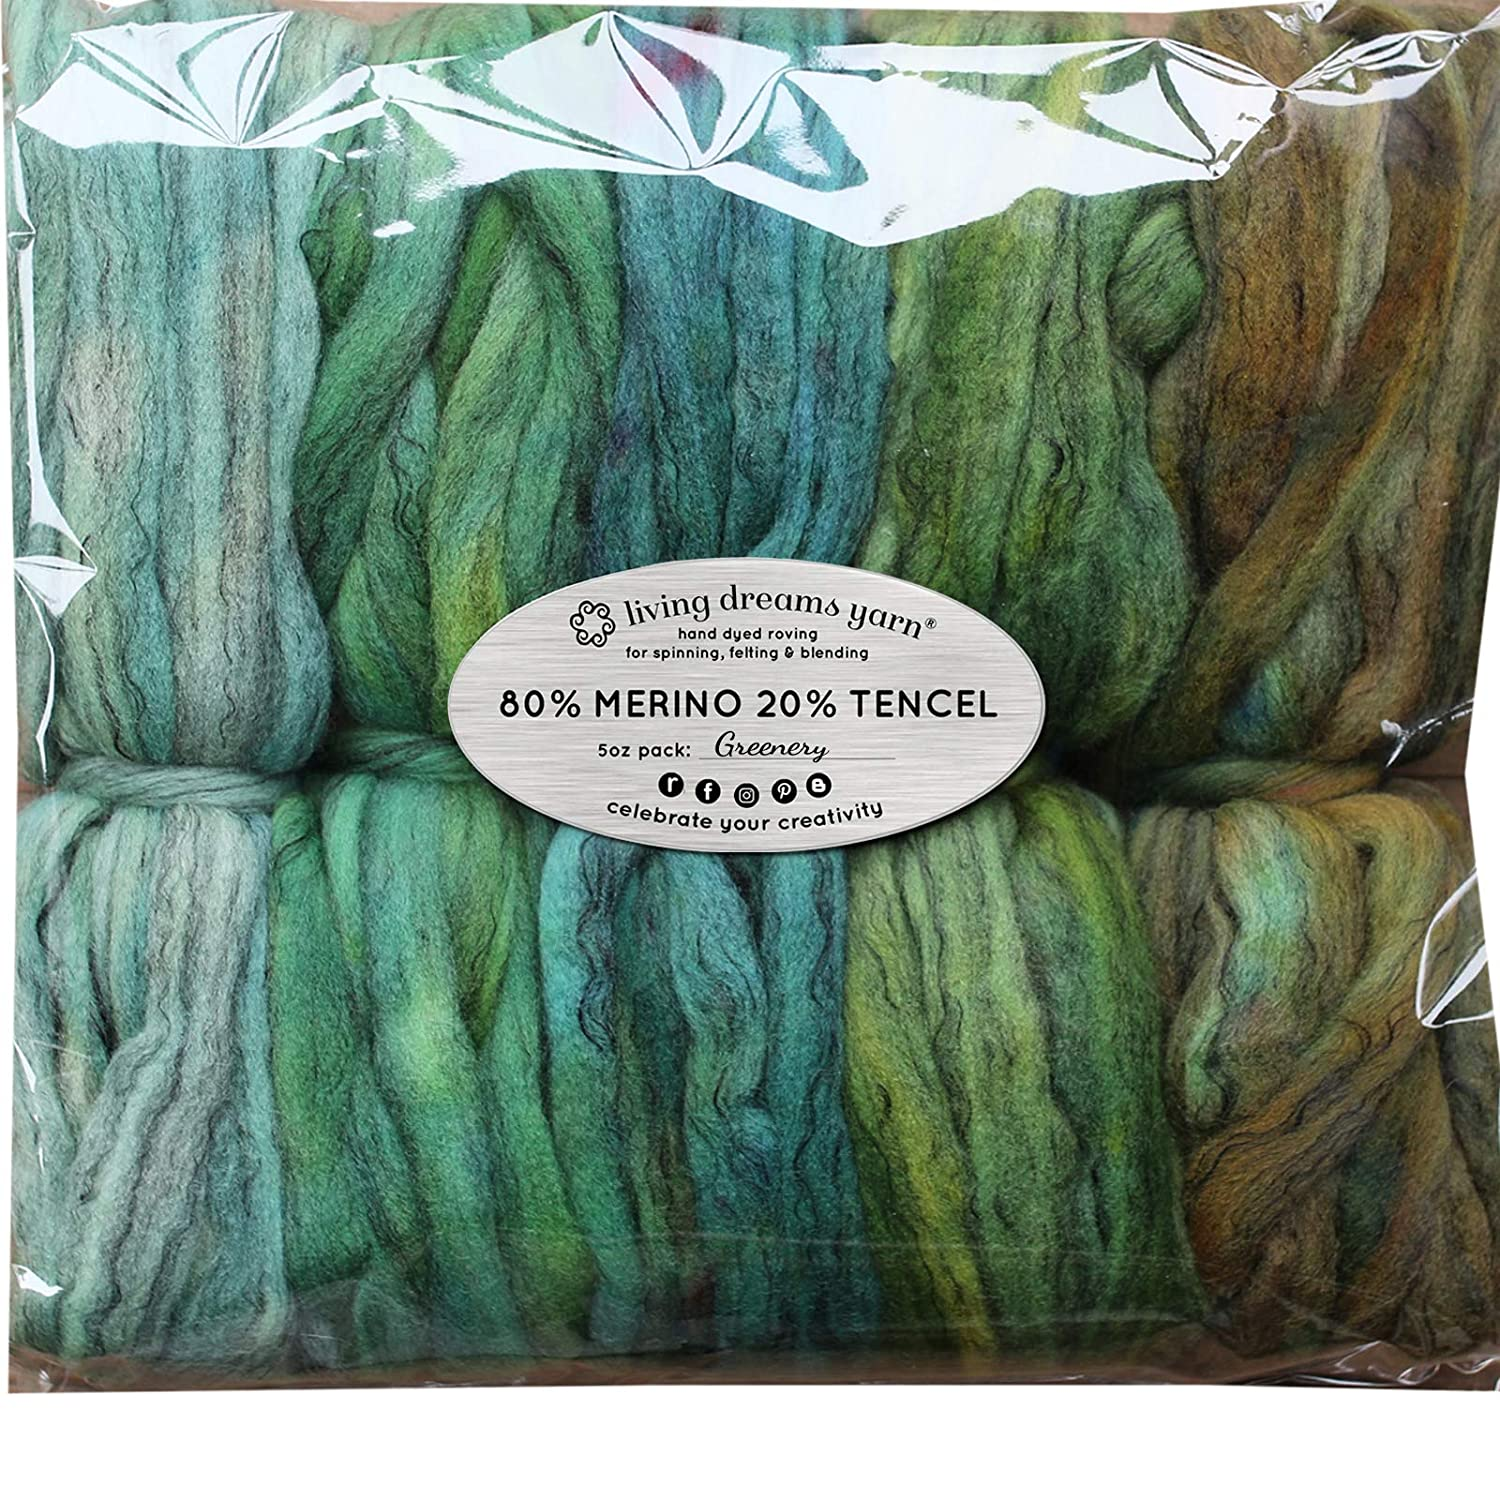 Spinning Fiber Super Soft BFL Wool Top Roving drafted for Hand Spinning with Drop Spindle or Wheel, Felting, Blending and Weaving. Variegated Hand Dyed Mini skeins. 5 Ounce Discount Pack, Greenery Living Dreams Yarn BFLGreenery5oz